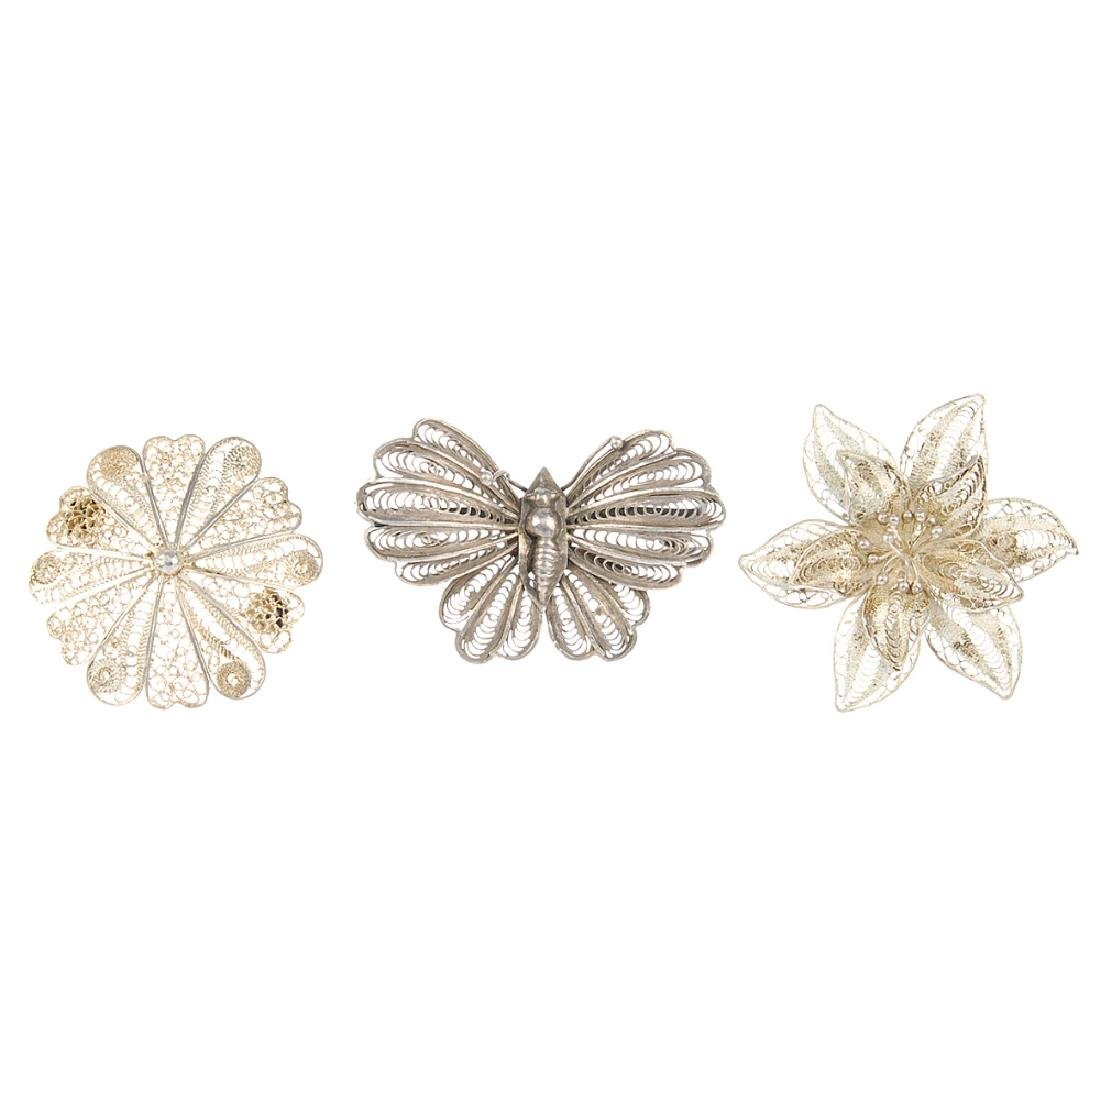 A selection of filigree jewellery. To include a brooch